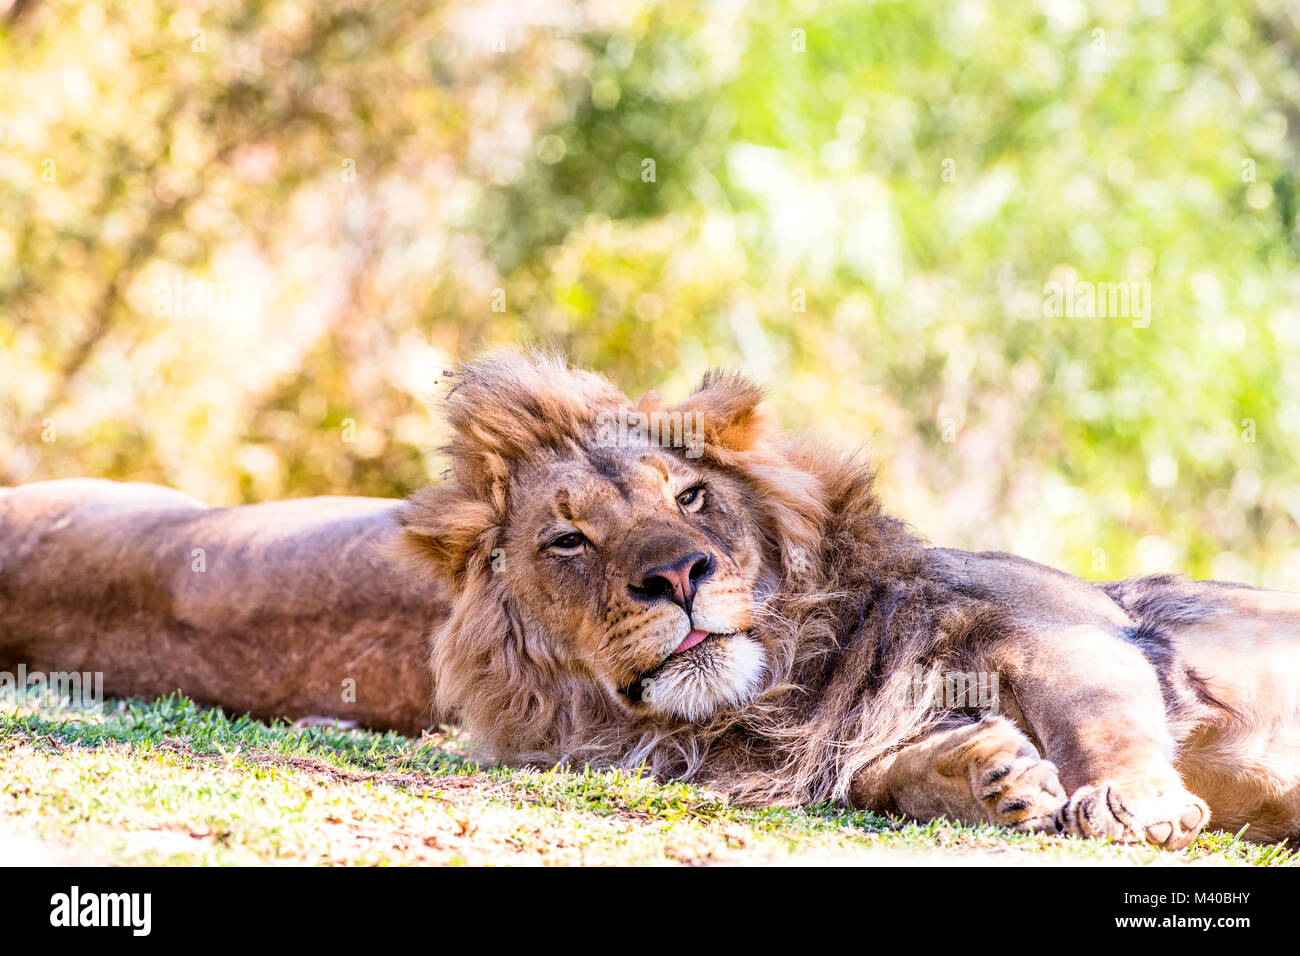 A lion rests while peering up to scan the area for intruders. - Stock Image